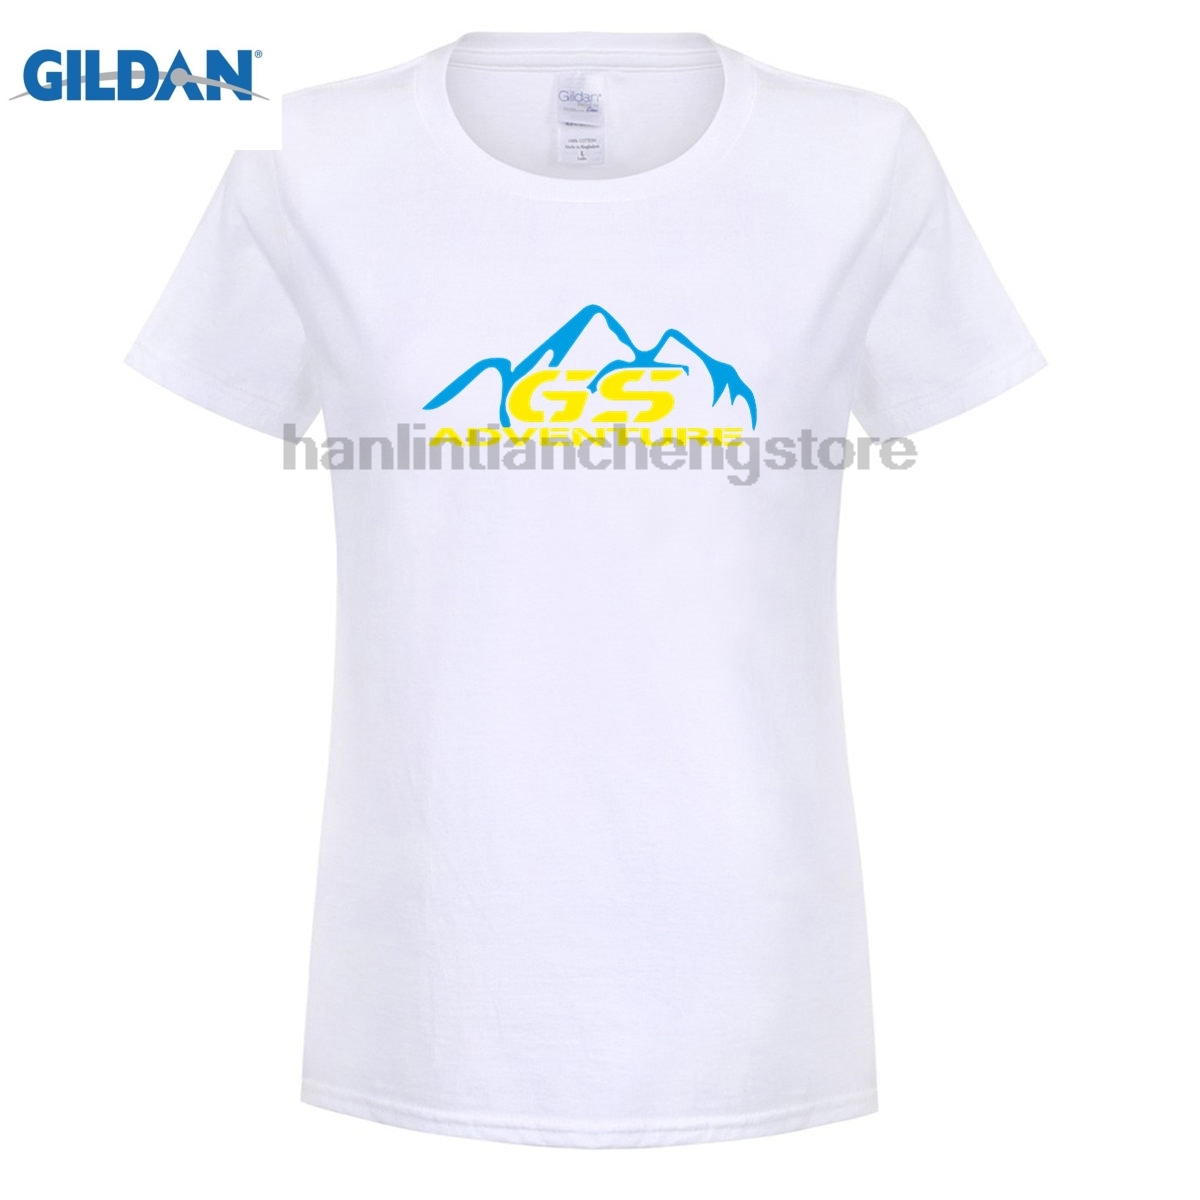 GILDAN Fashion Brand T Shirts women Summer Casual Tee Shirts fan Adventure For R 1100 1150 1200 Gs Gsa Driver custom T Shirts